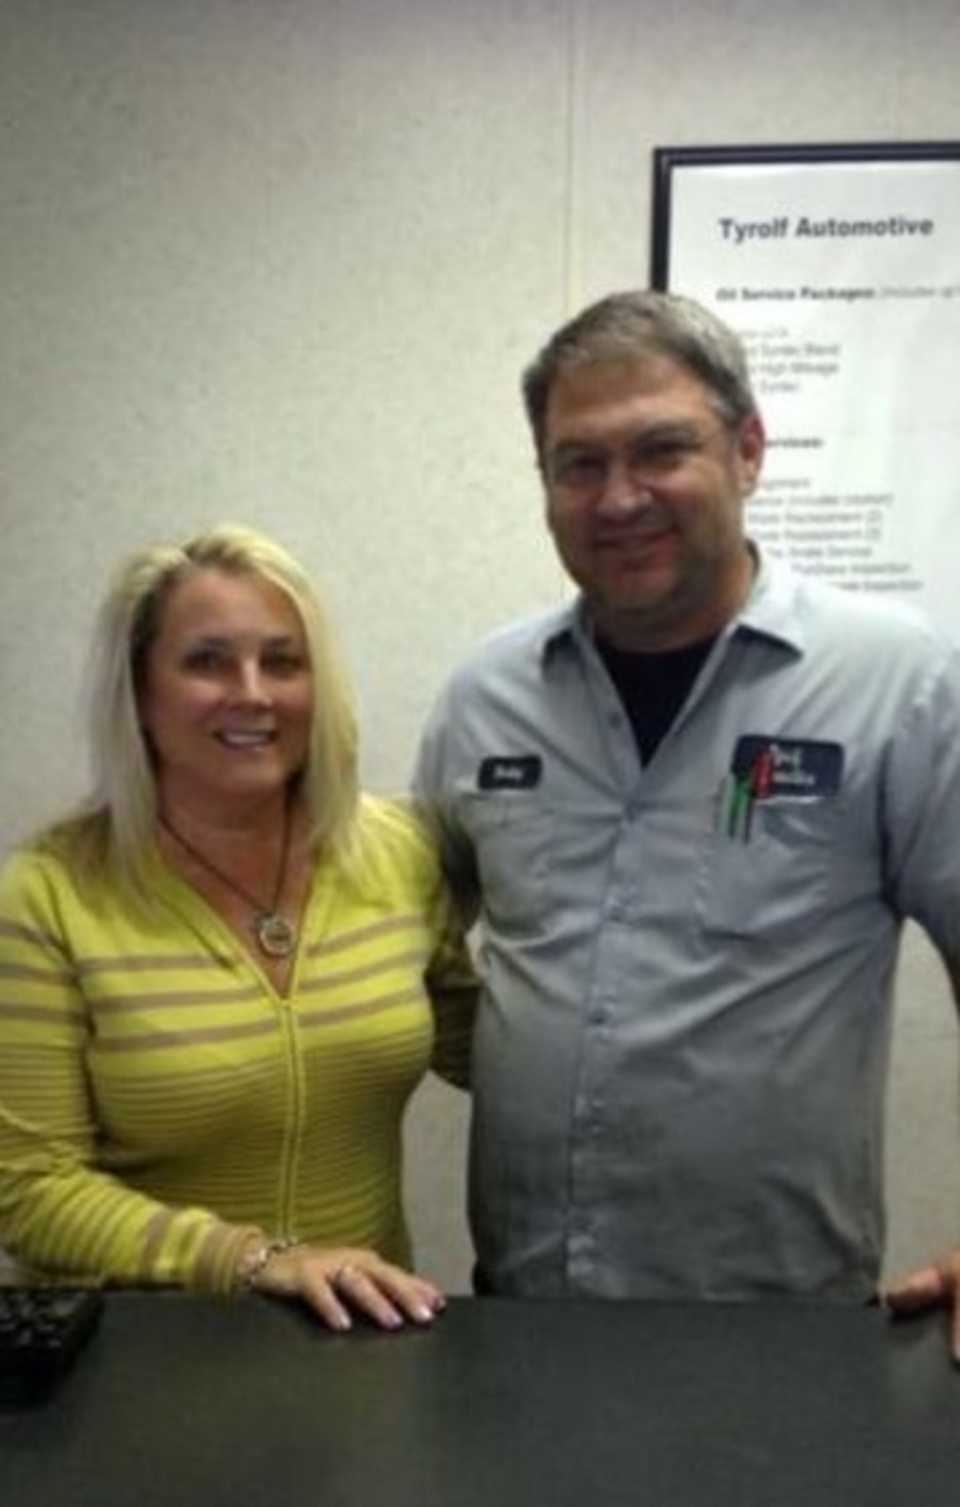 Meet Co-Owners Bobby and Sherri Tyrolf at our convenient location in Knightdale!